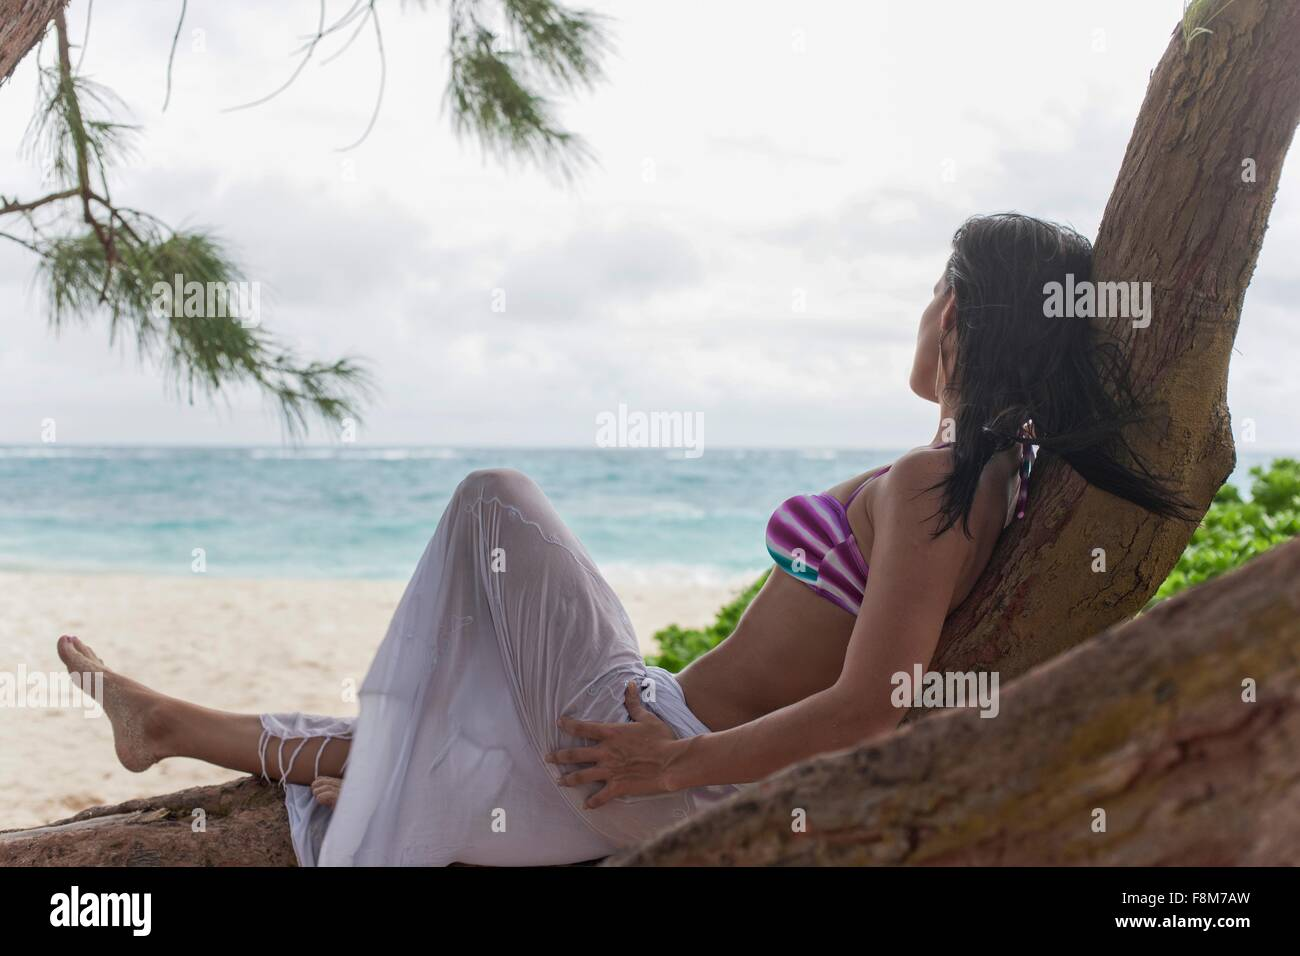 Woman reclining in beach tree looking out at sea, Barbados, The Caribbean - Stock Image